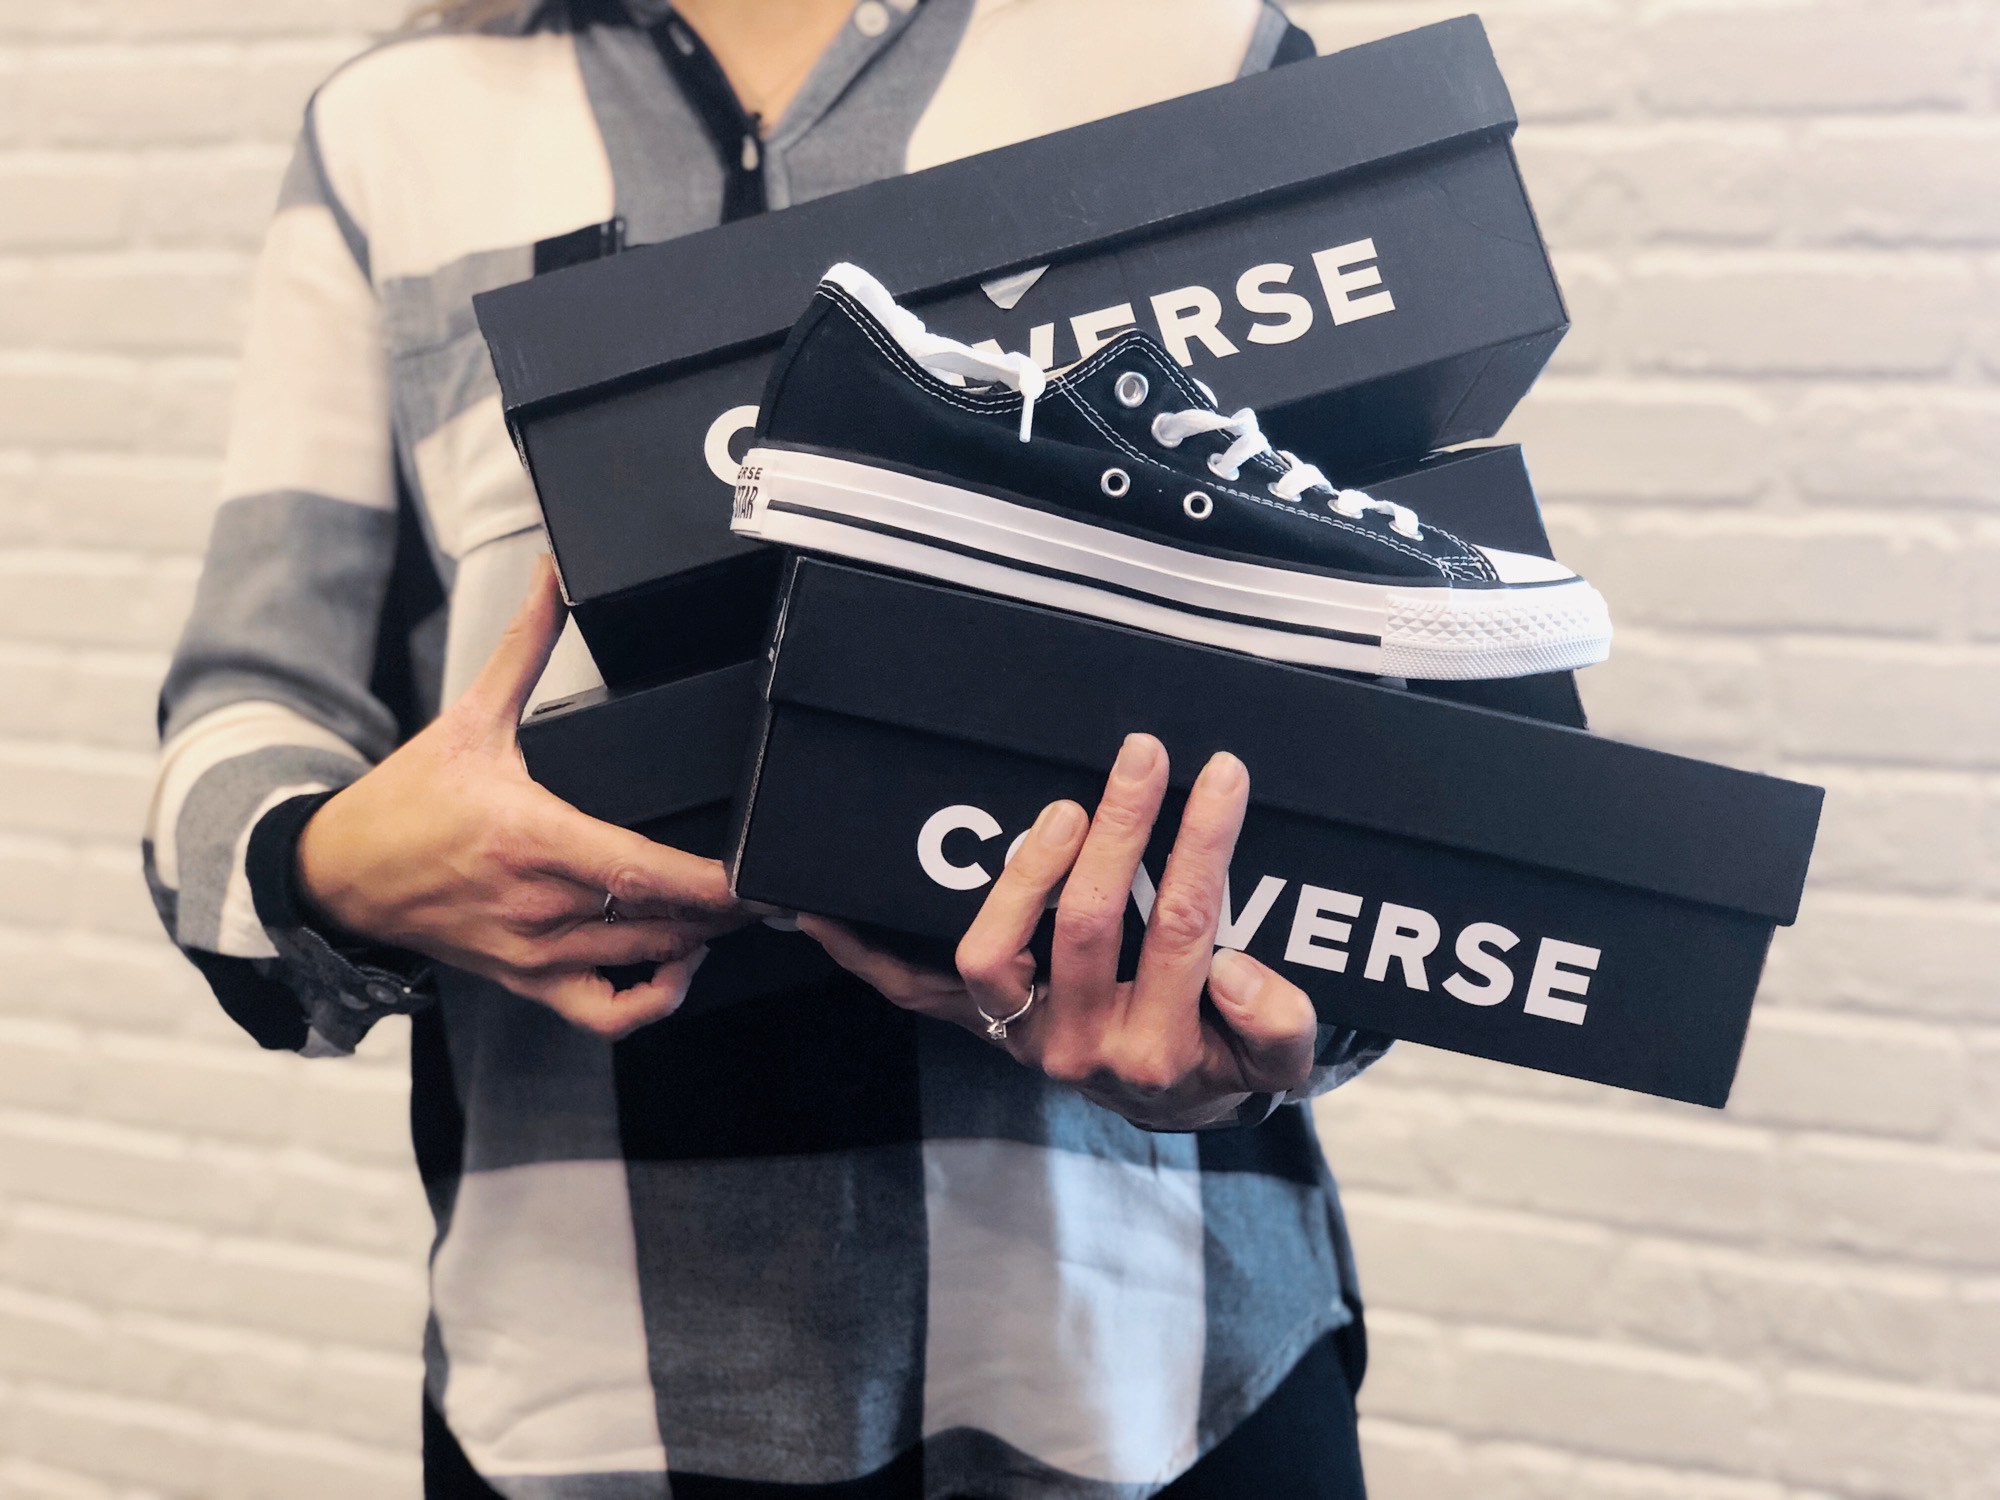 Conerse US Cyber Monday 4 - Converse US Cyber Monday 2020